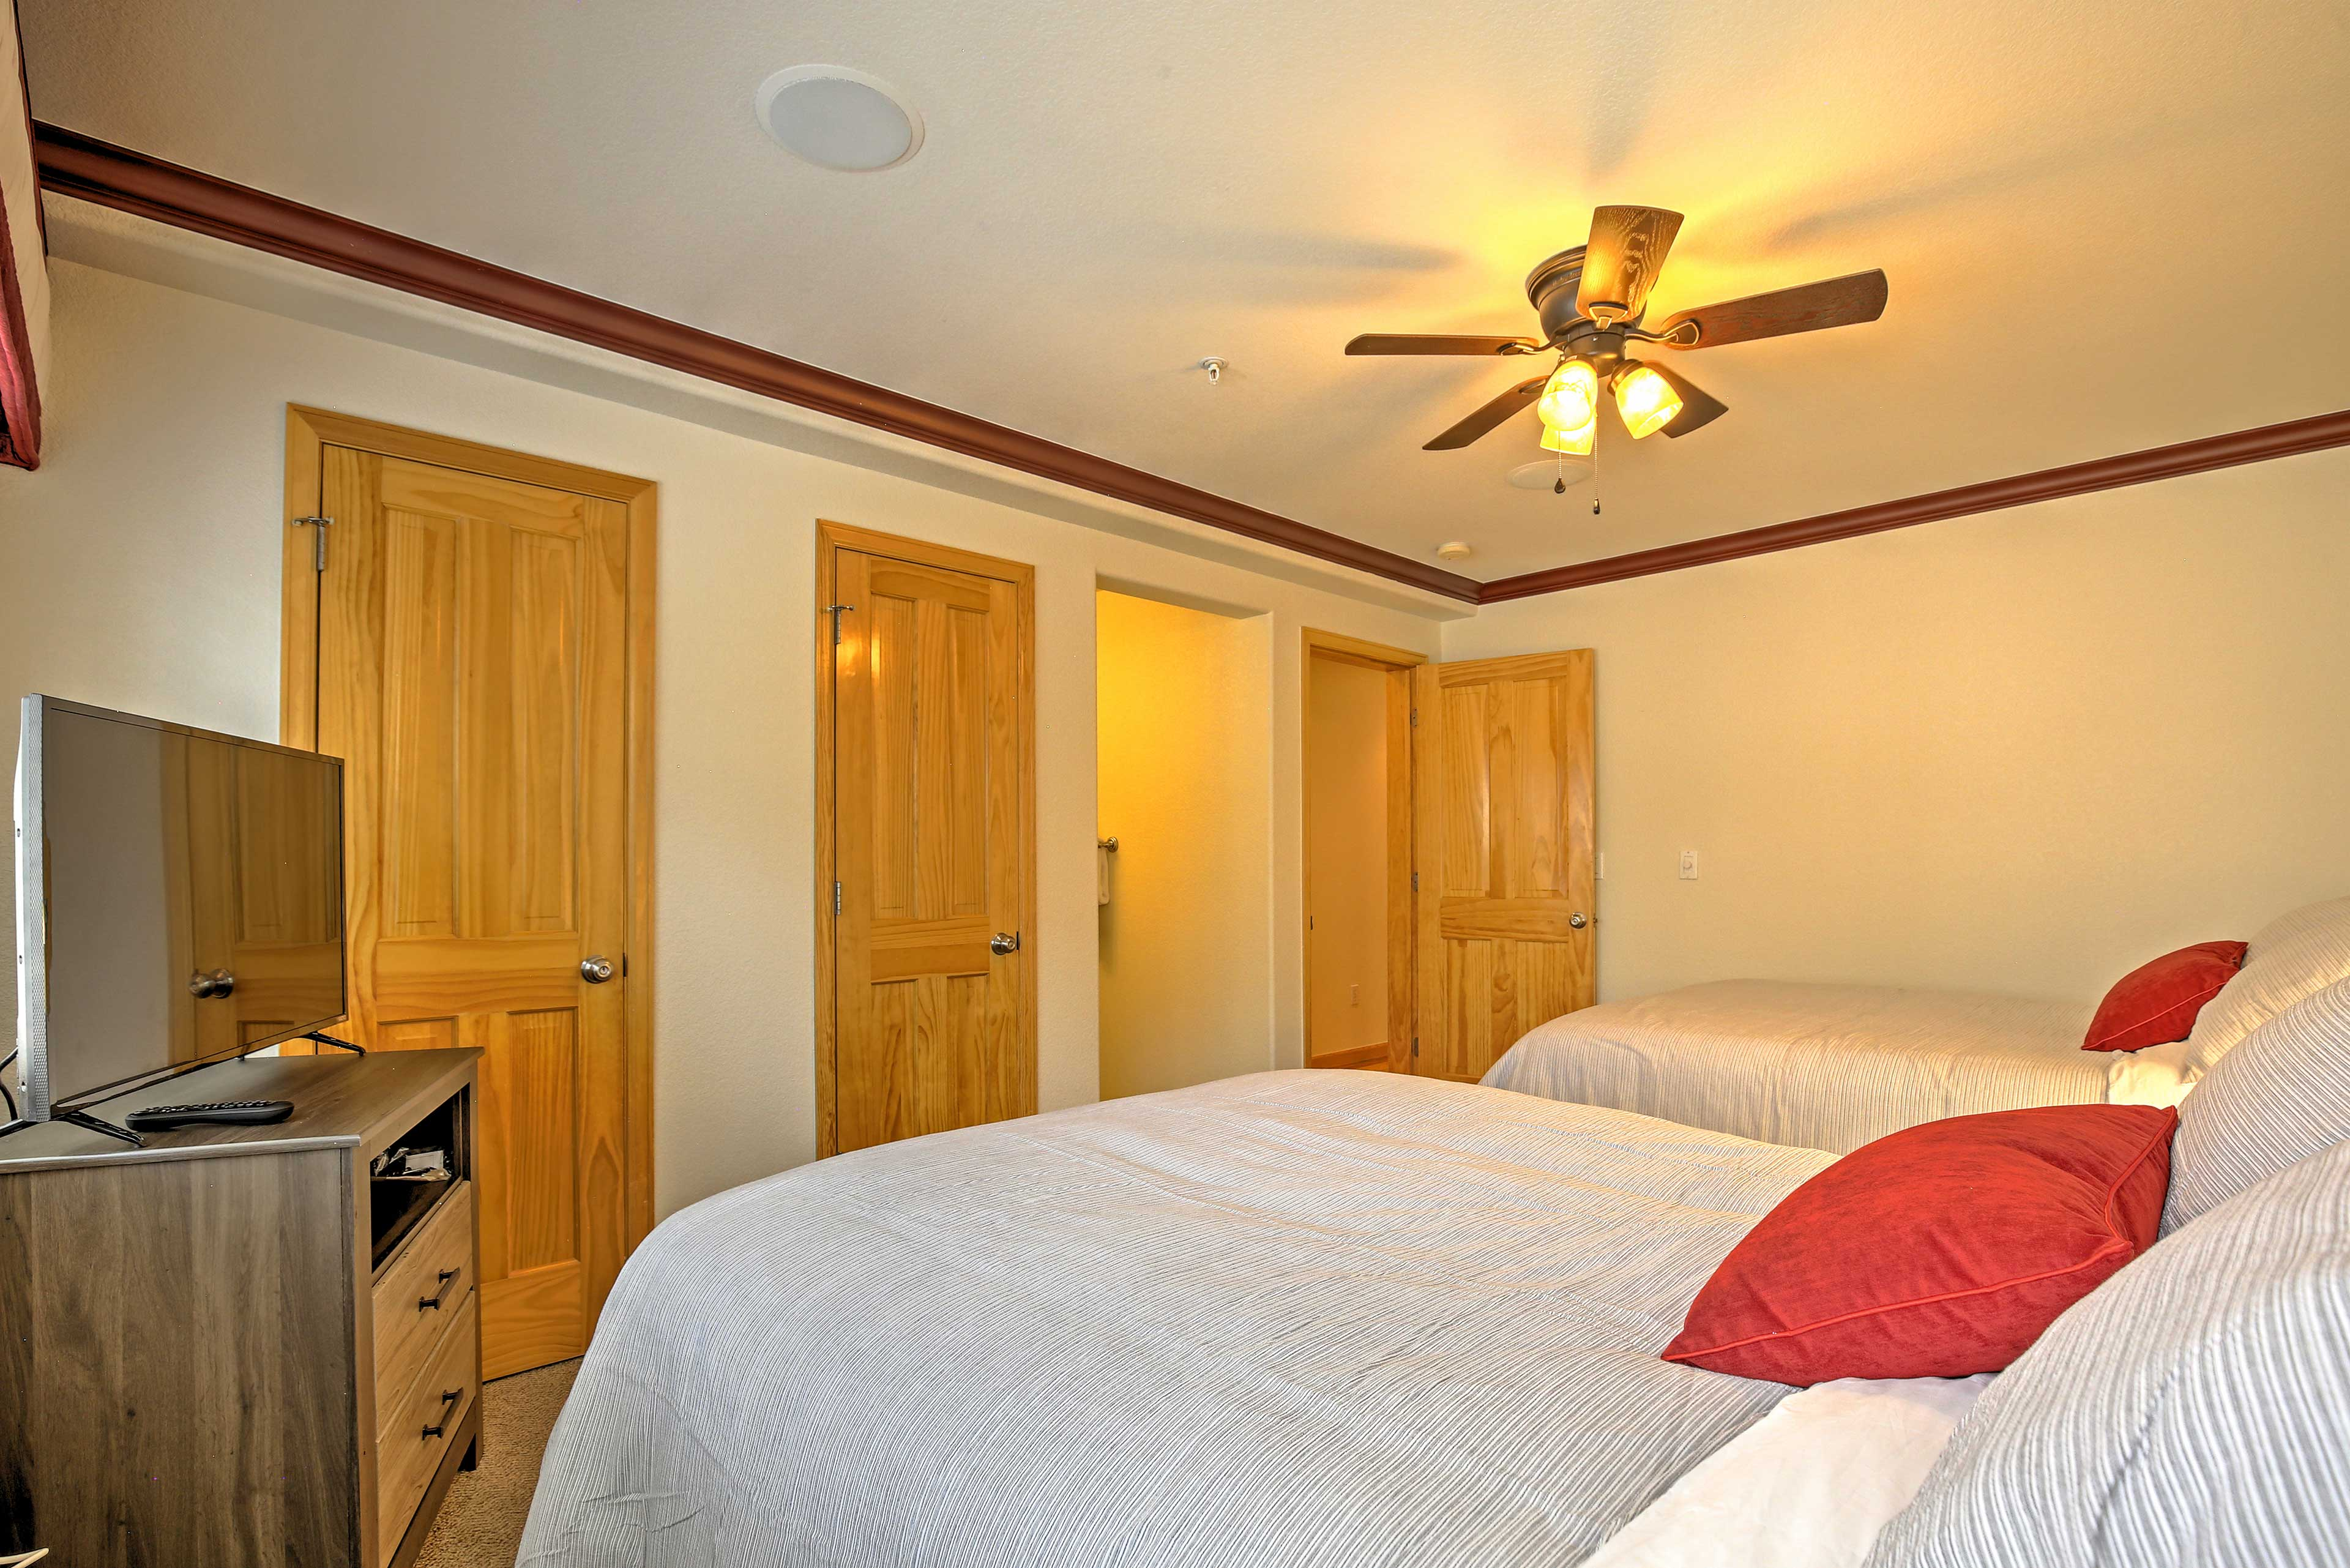 The third bedroom offers 2 full-sized beds, both with brand new mattresses.